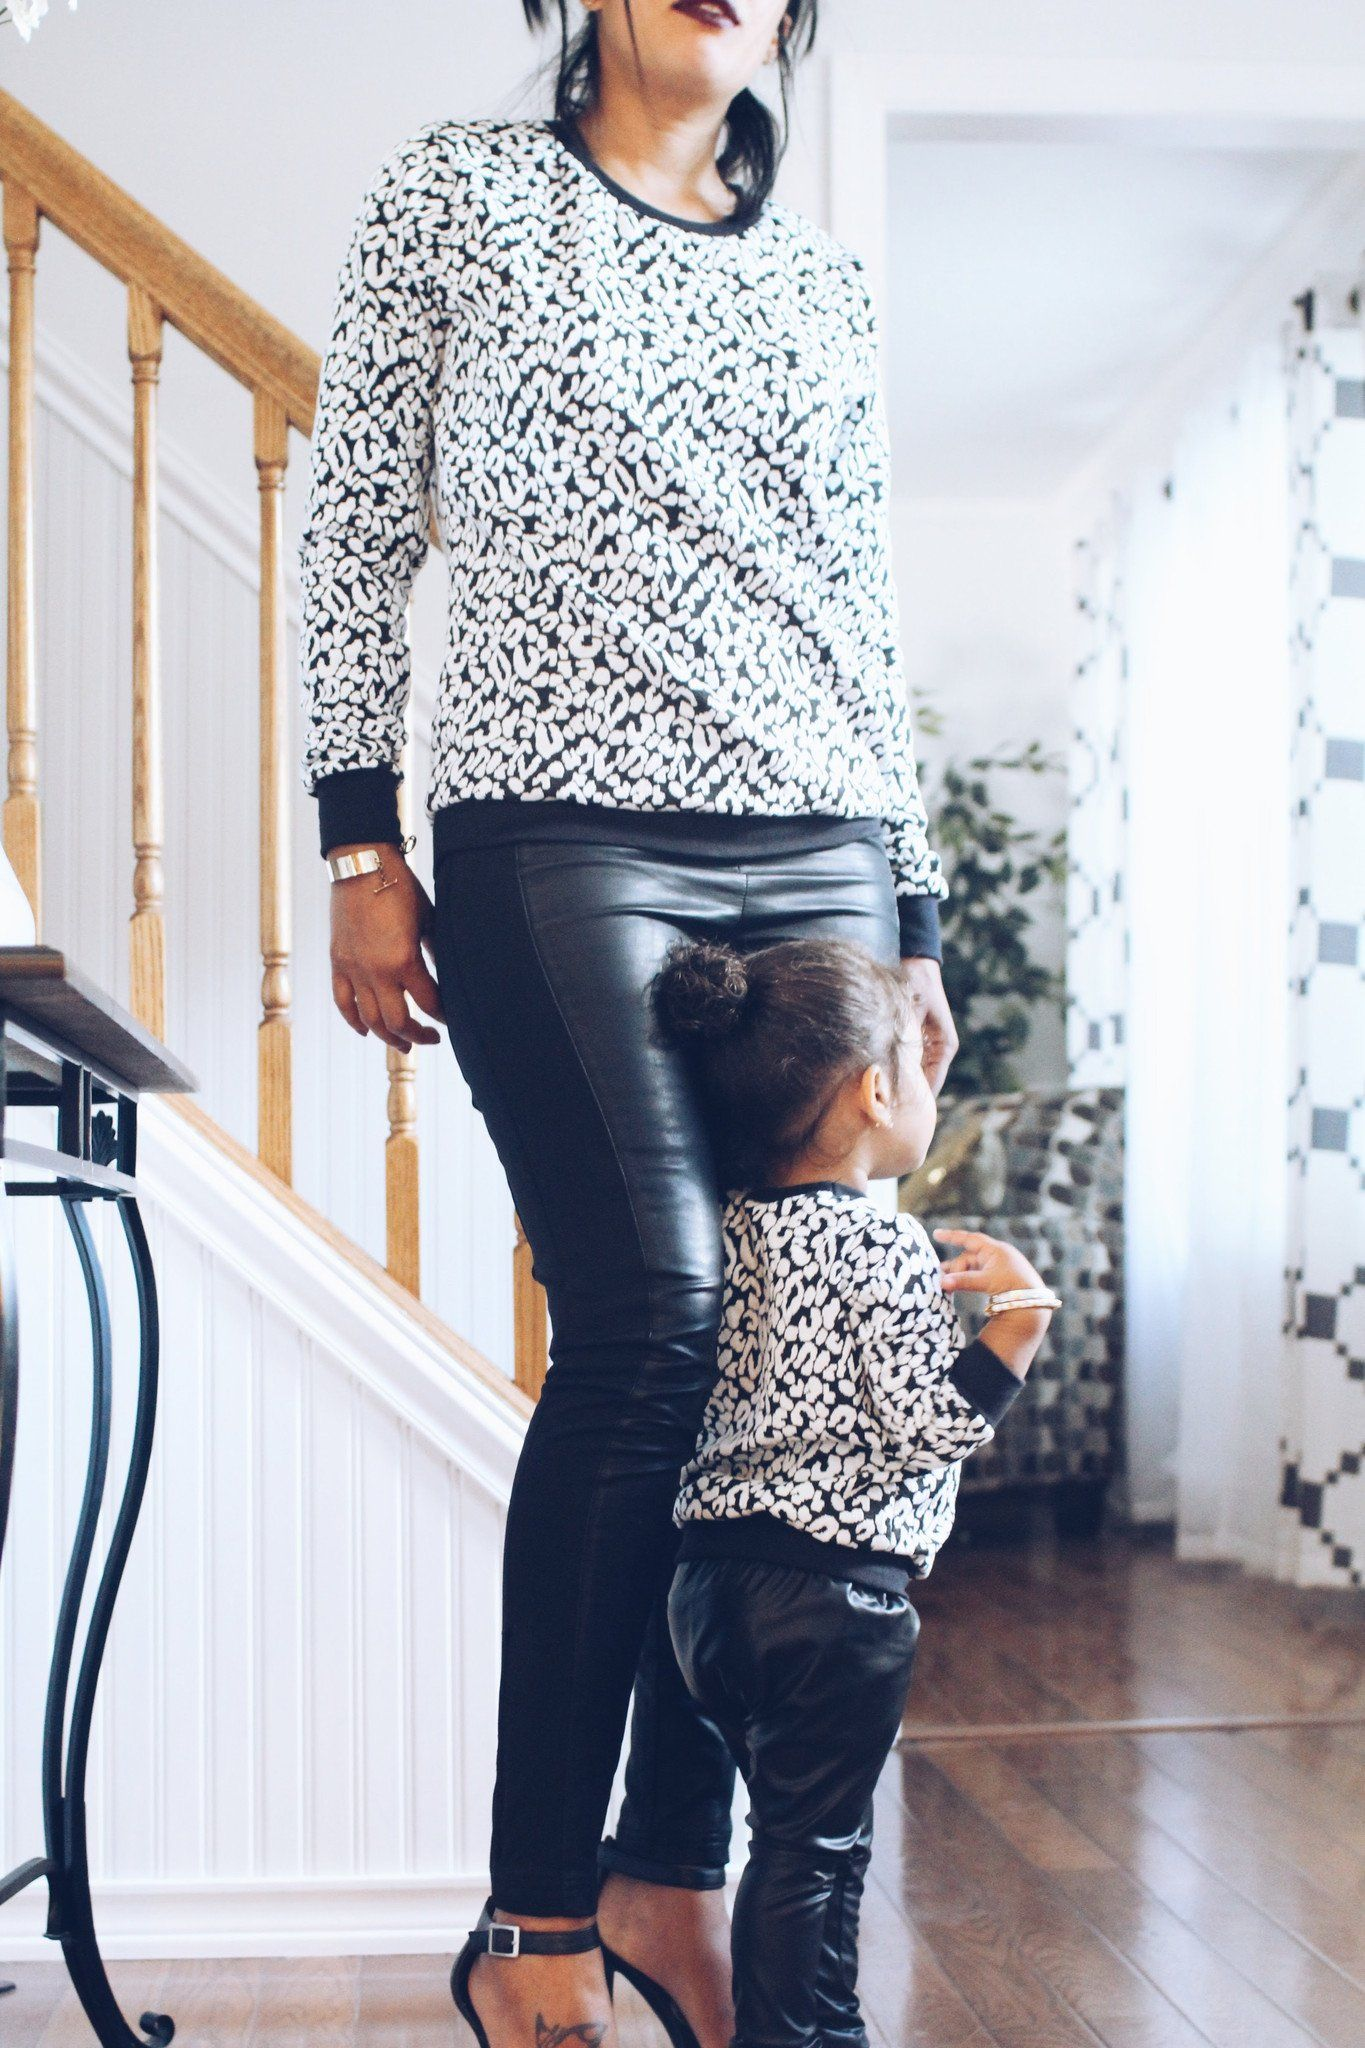 Sweater - Mommy And Baby Matching Tops - Black & White Cheetah Sweaters